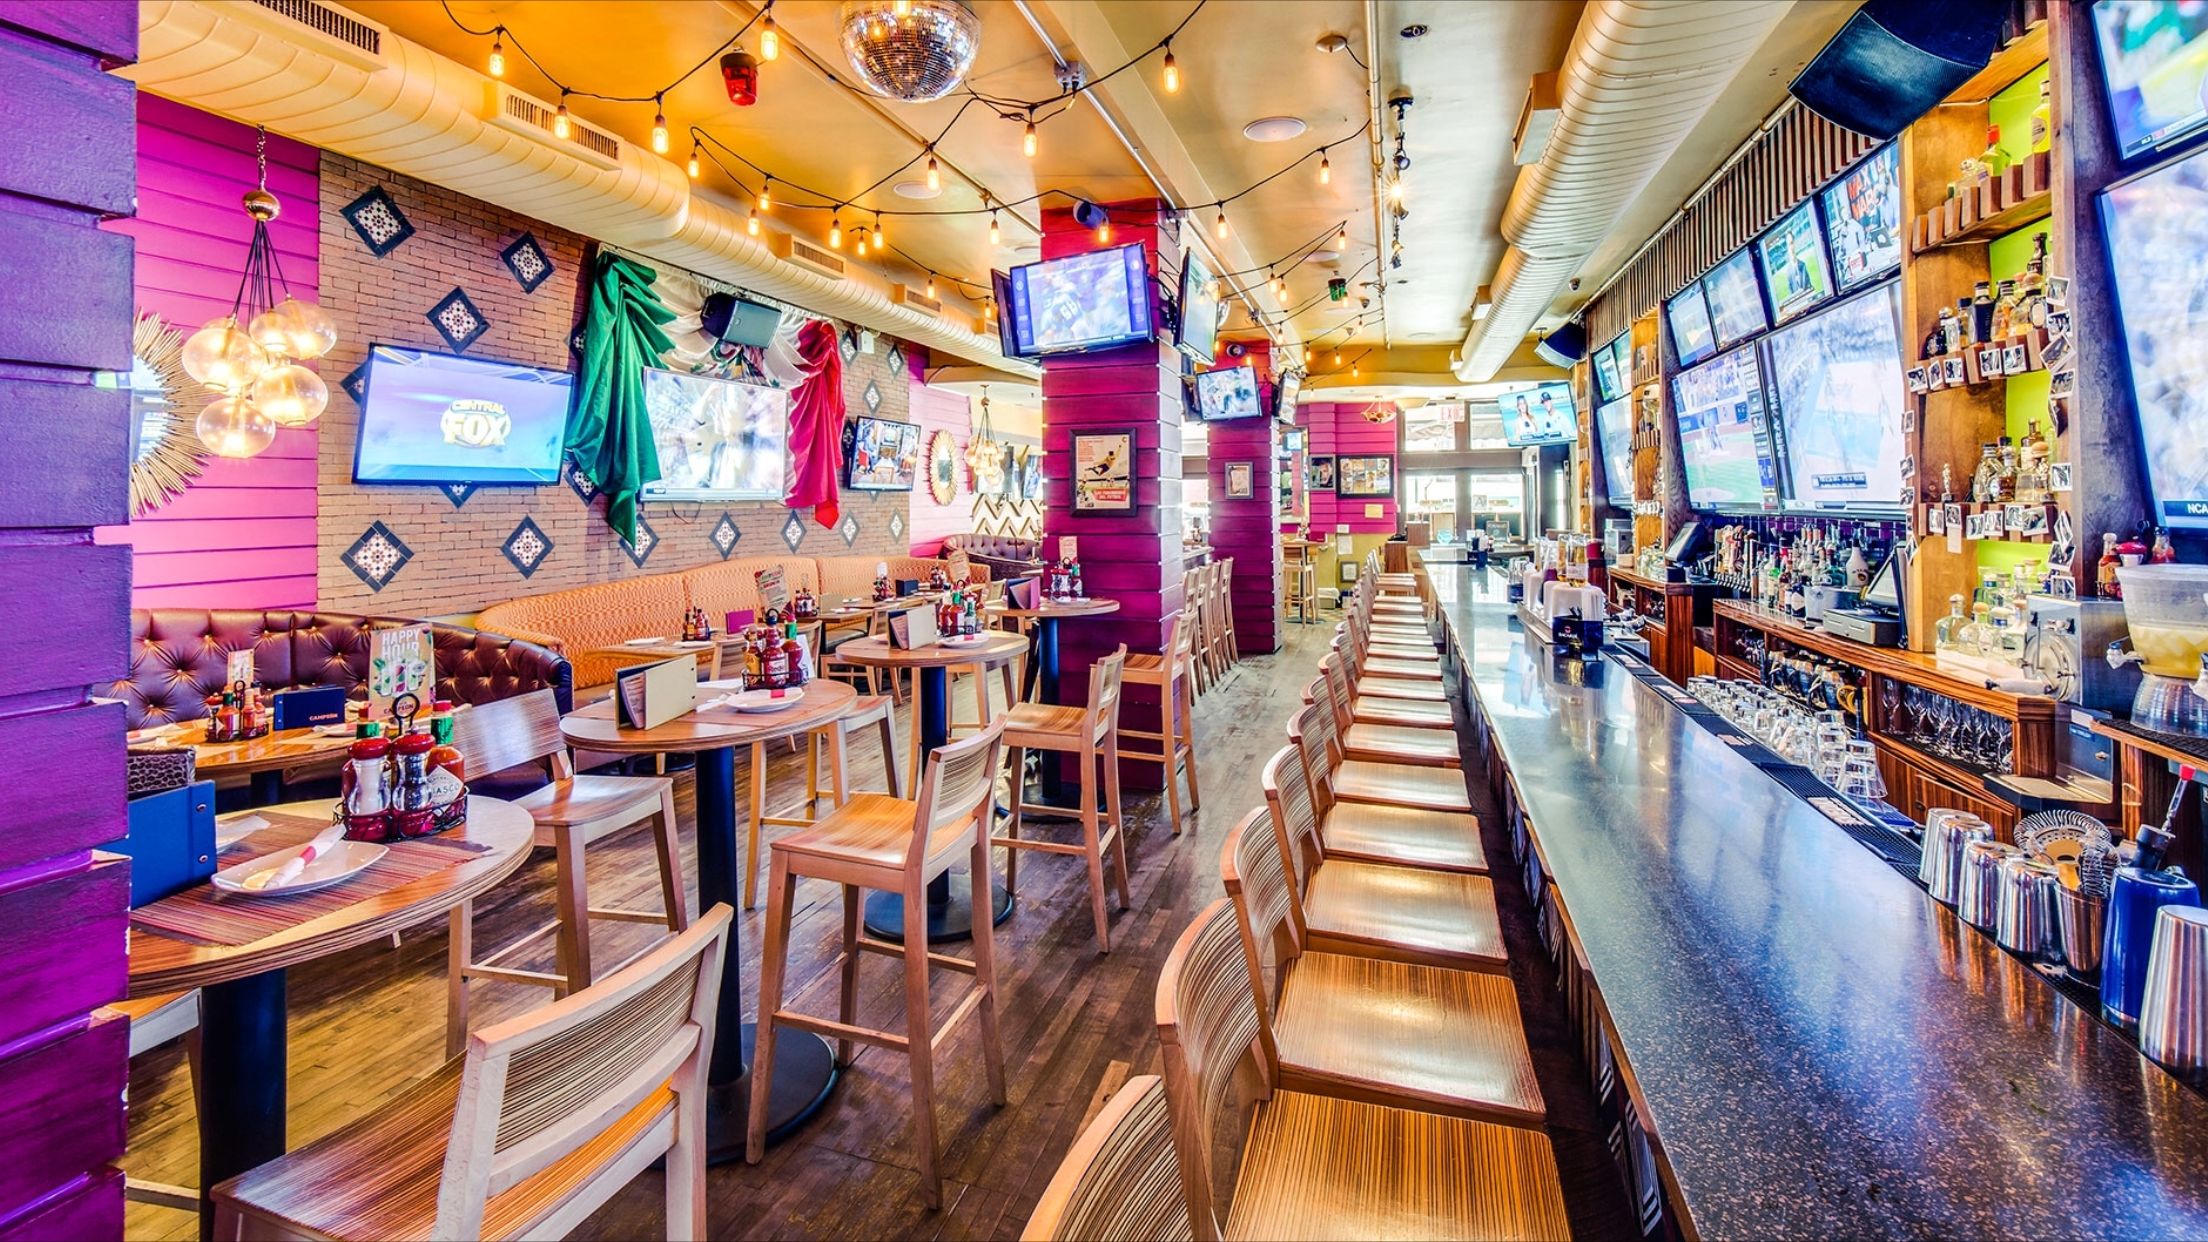 nyc birthday bars: best spots for birthday parties « cbs new york